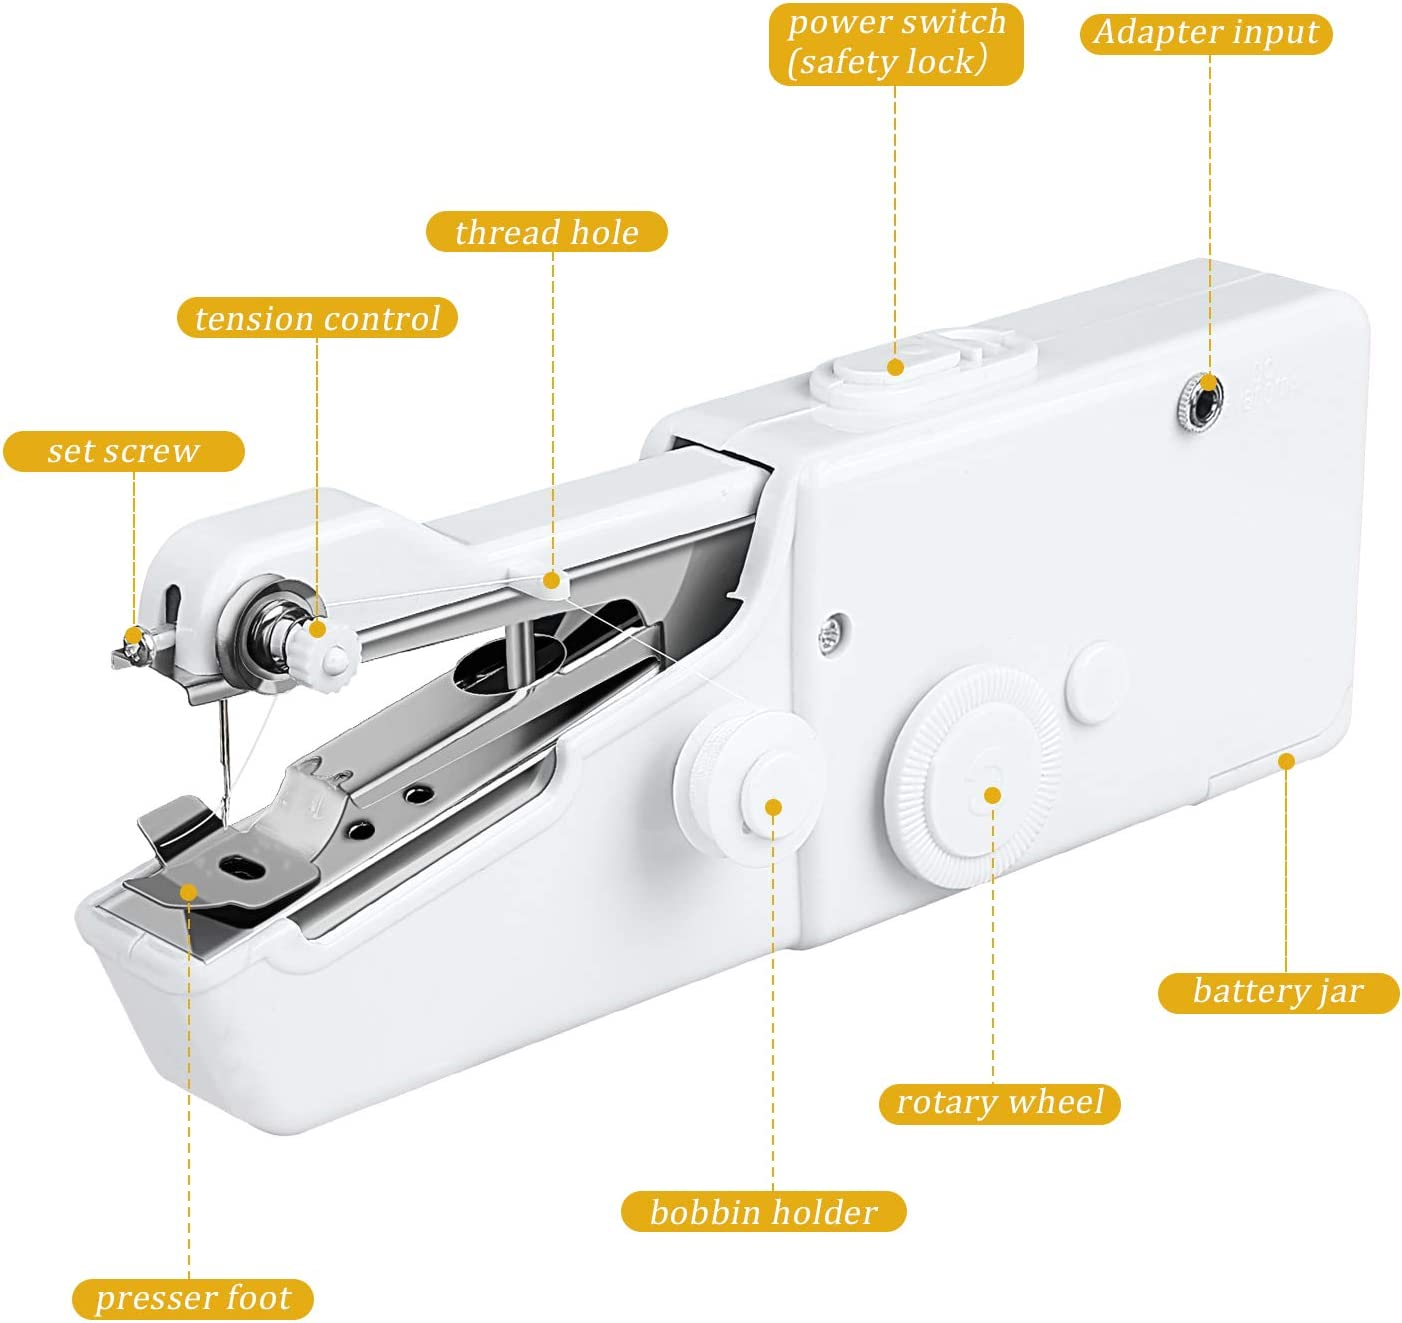 Redmoo Mini Handheld Sewing Machine 18 Pcs Mini Handheld Sewing Machine Electric Hand Sewing Machine Portable Fast Handy Stitch for Fabric Curtain DIY Craft Home and Travel Use White